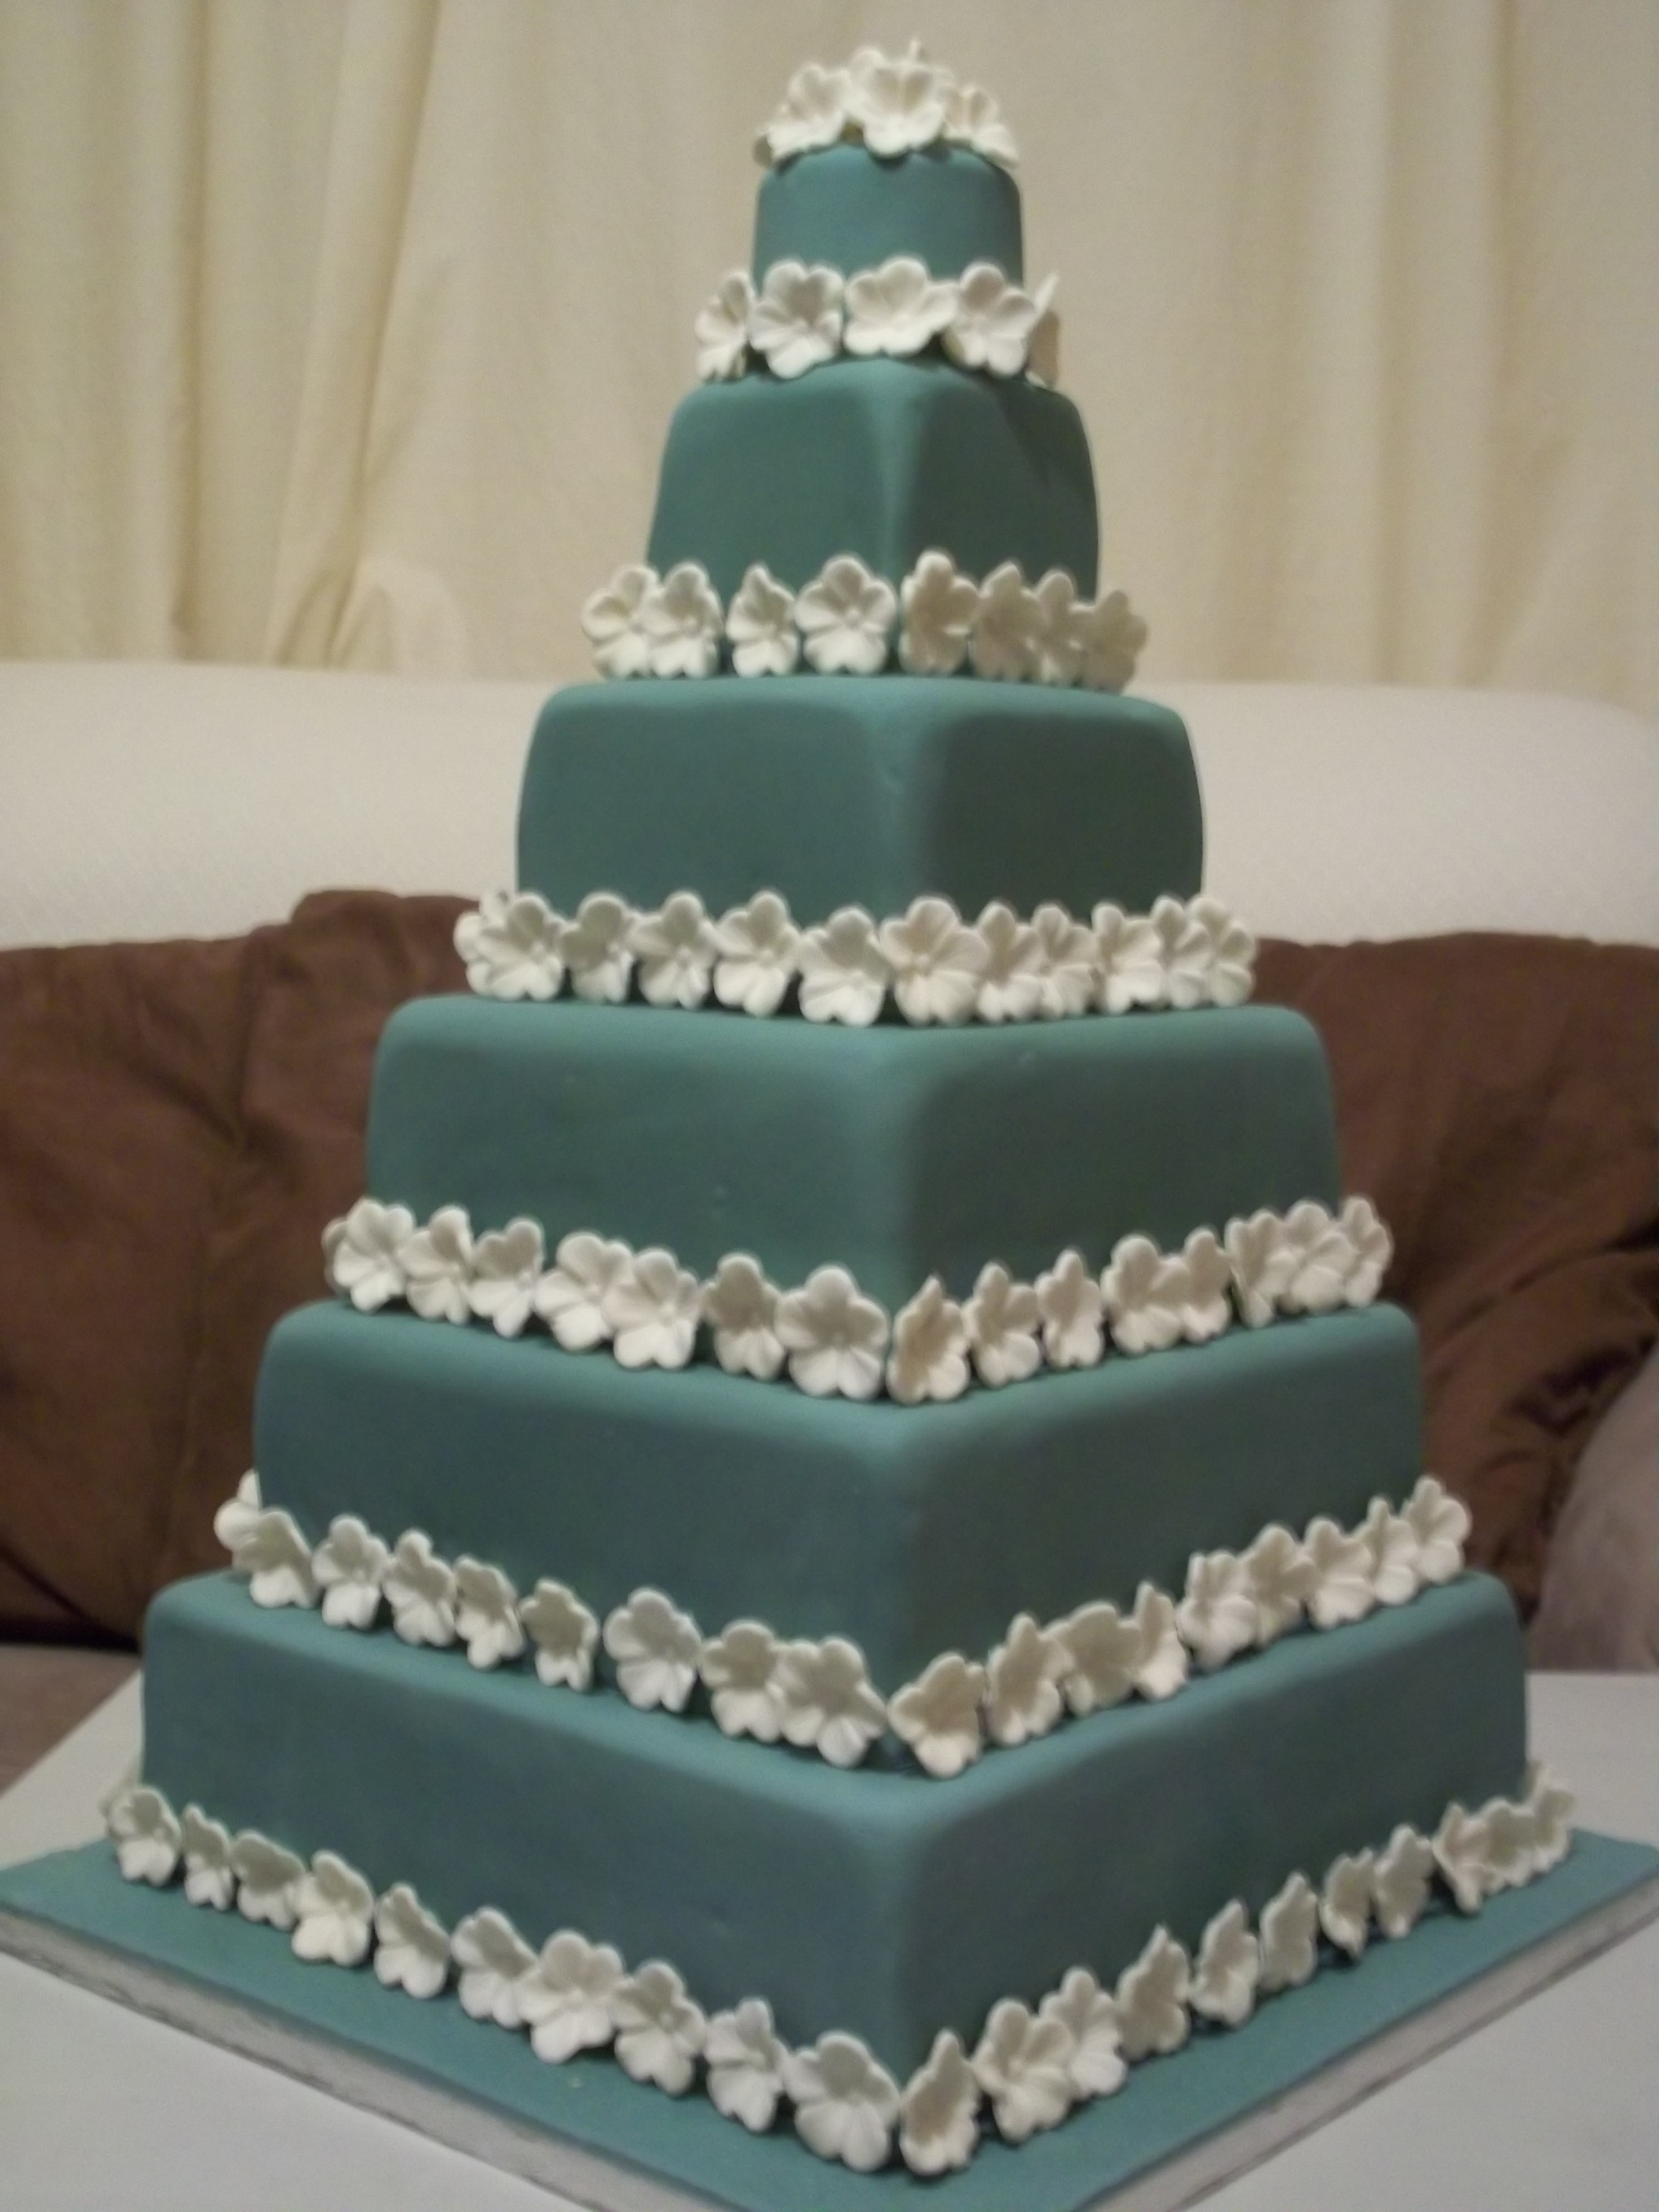 6 Tier Wedding Cake – Jan\'s Occasional Cakes